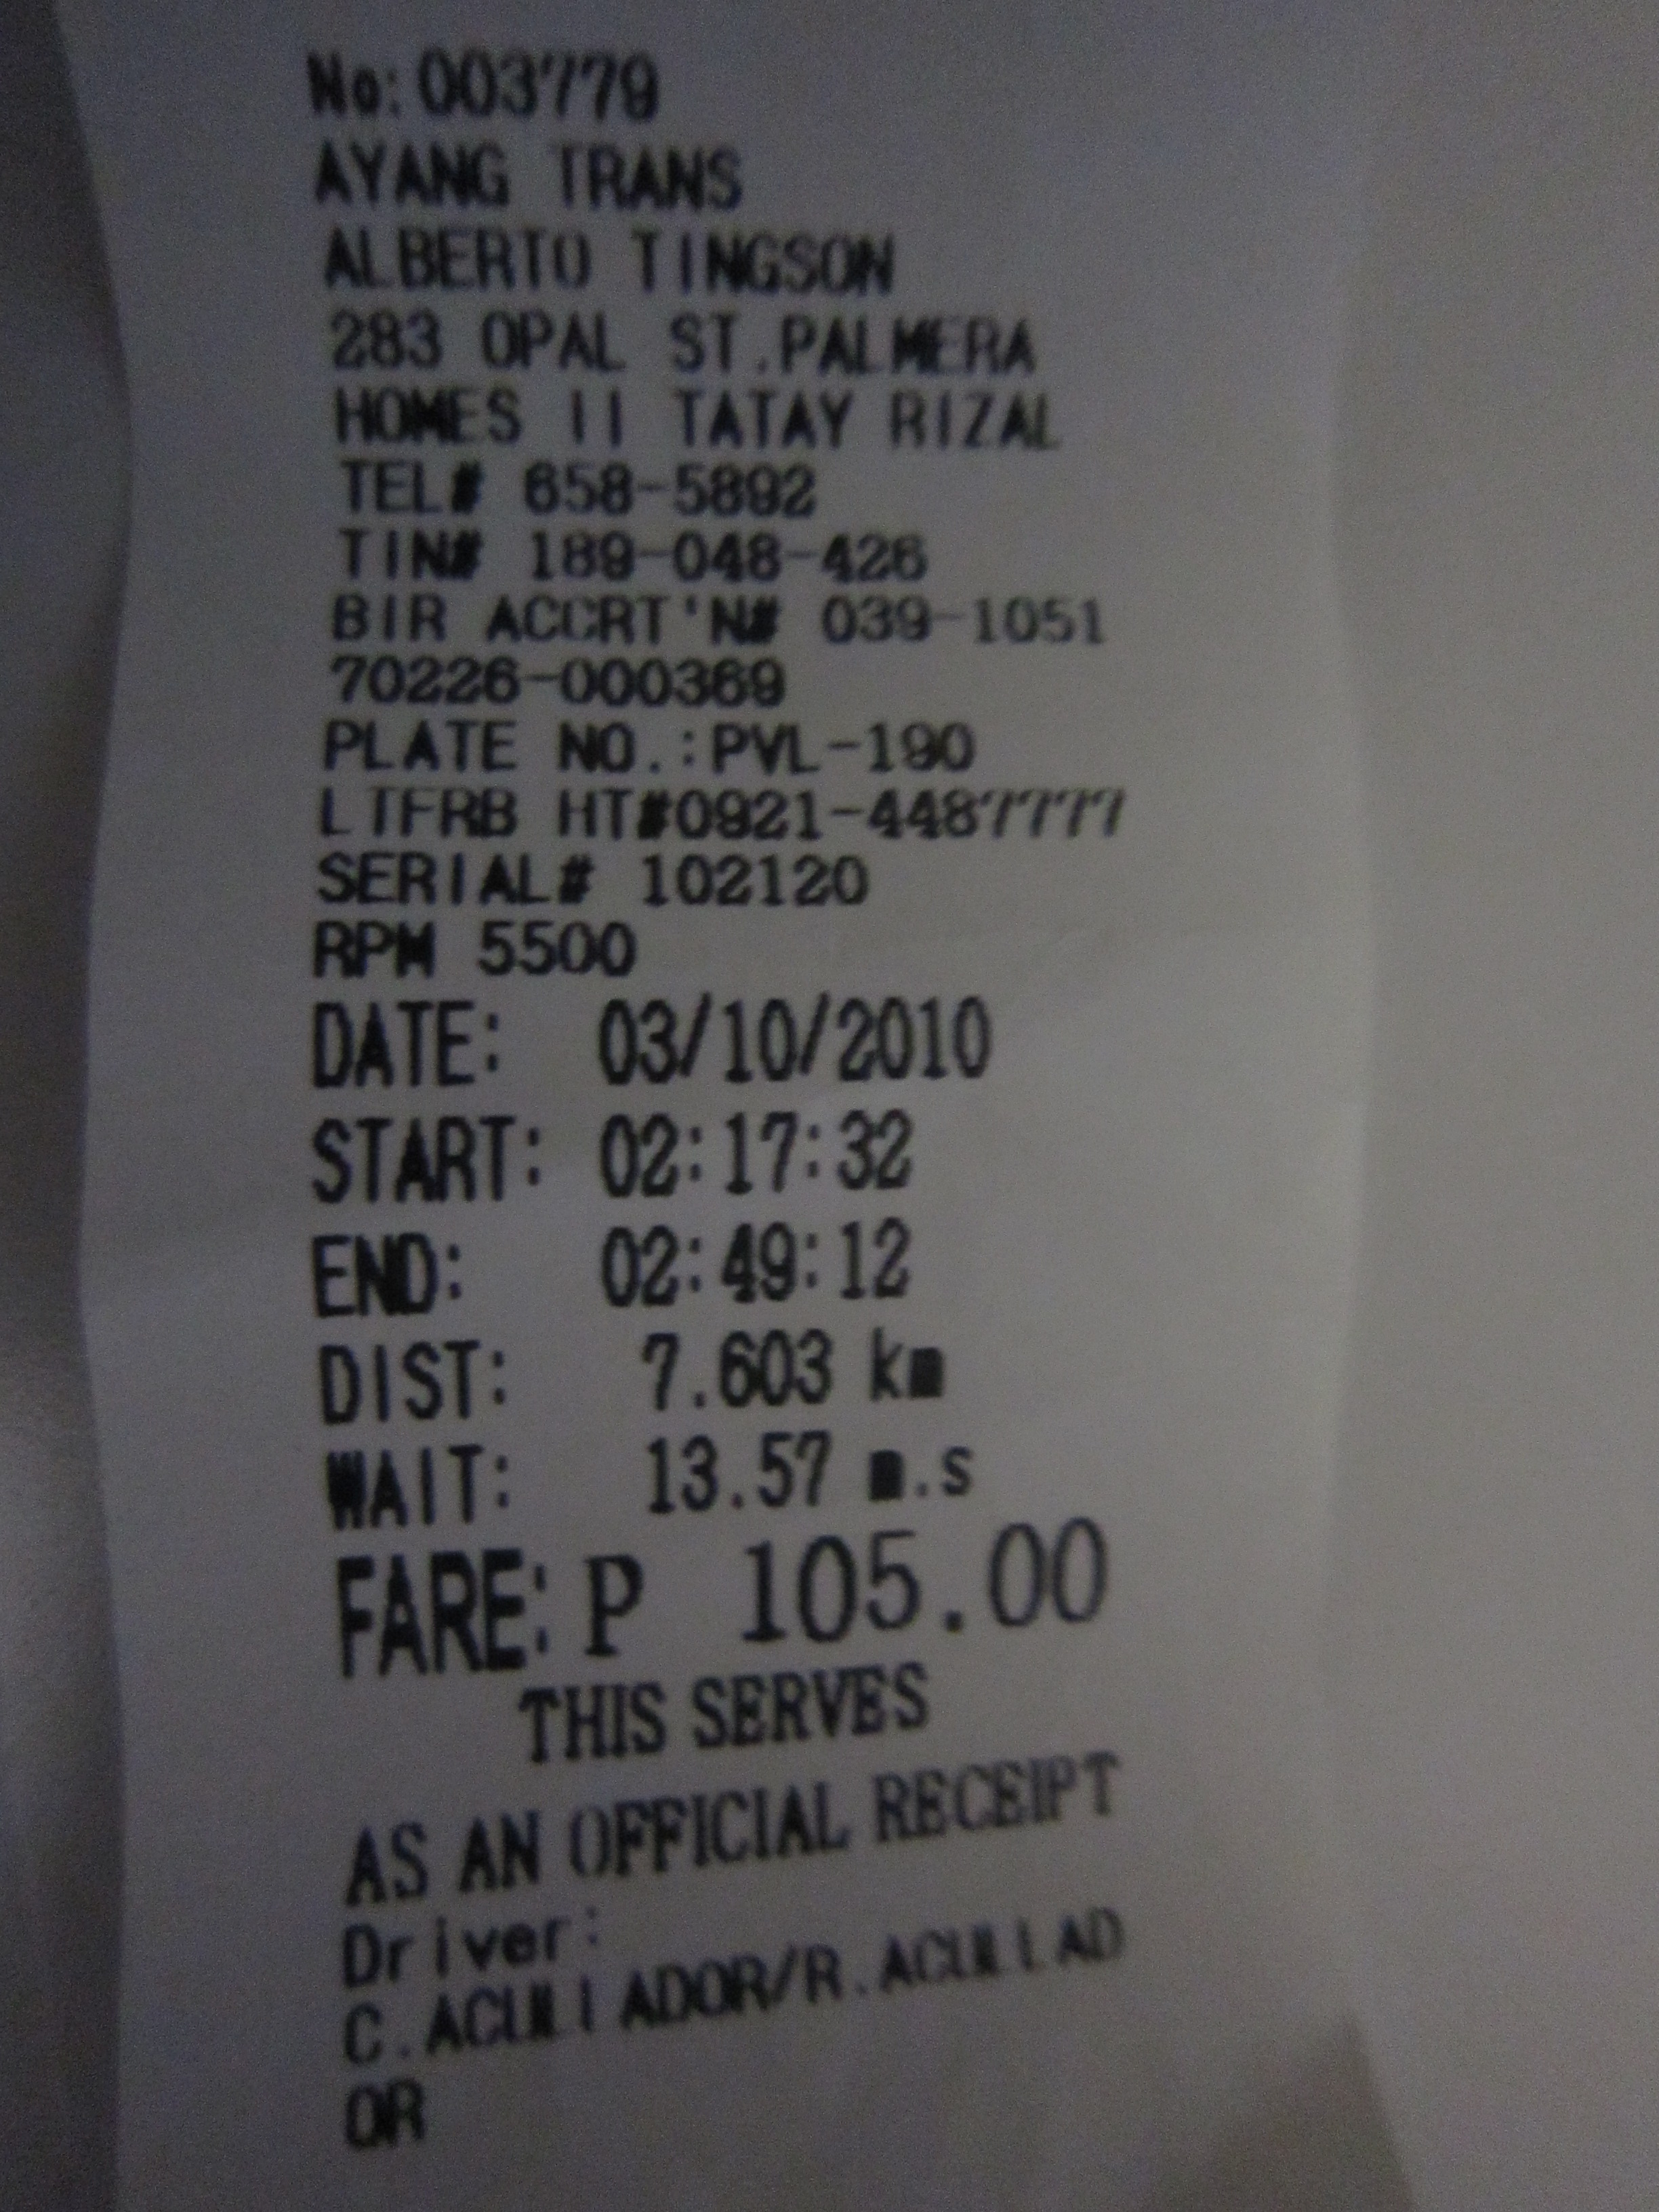 cover-image My First Cabby Receipt